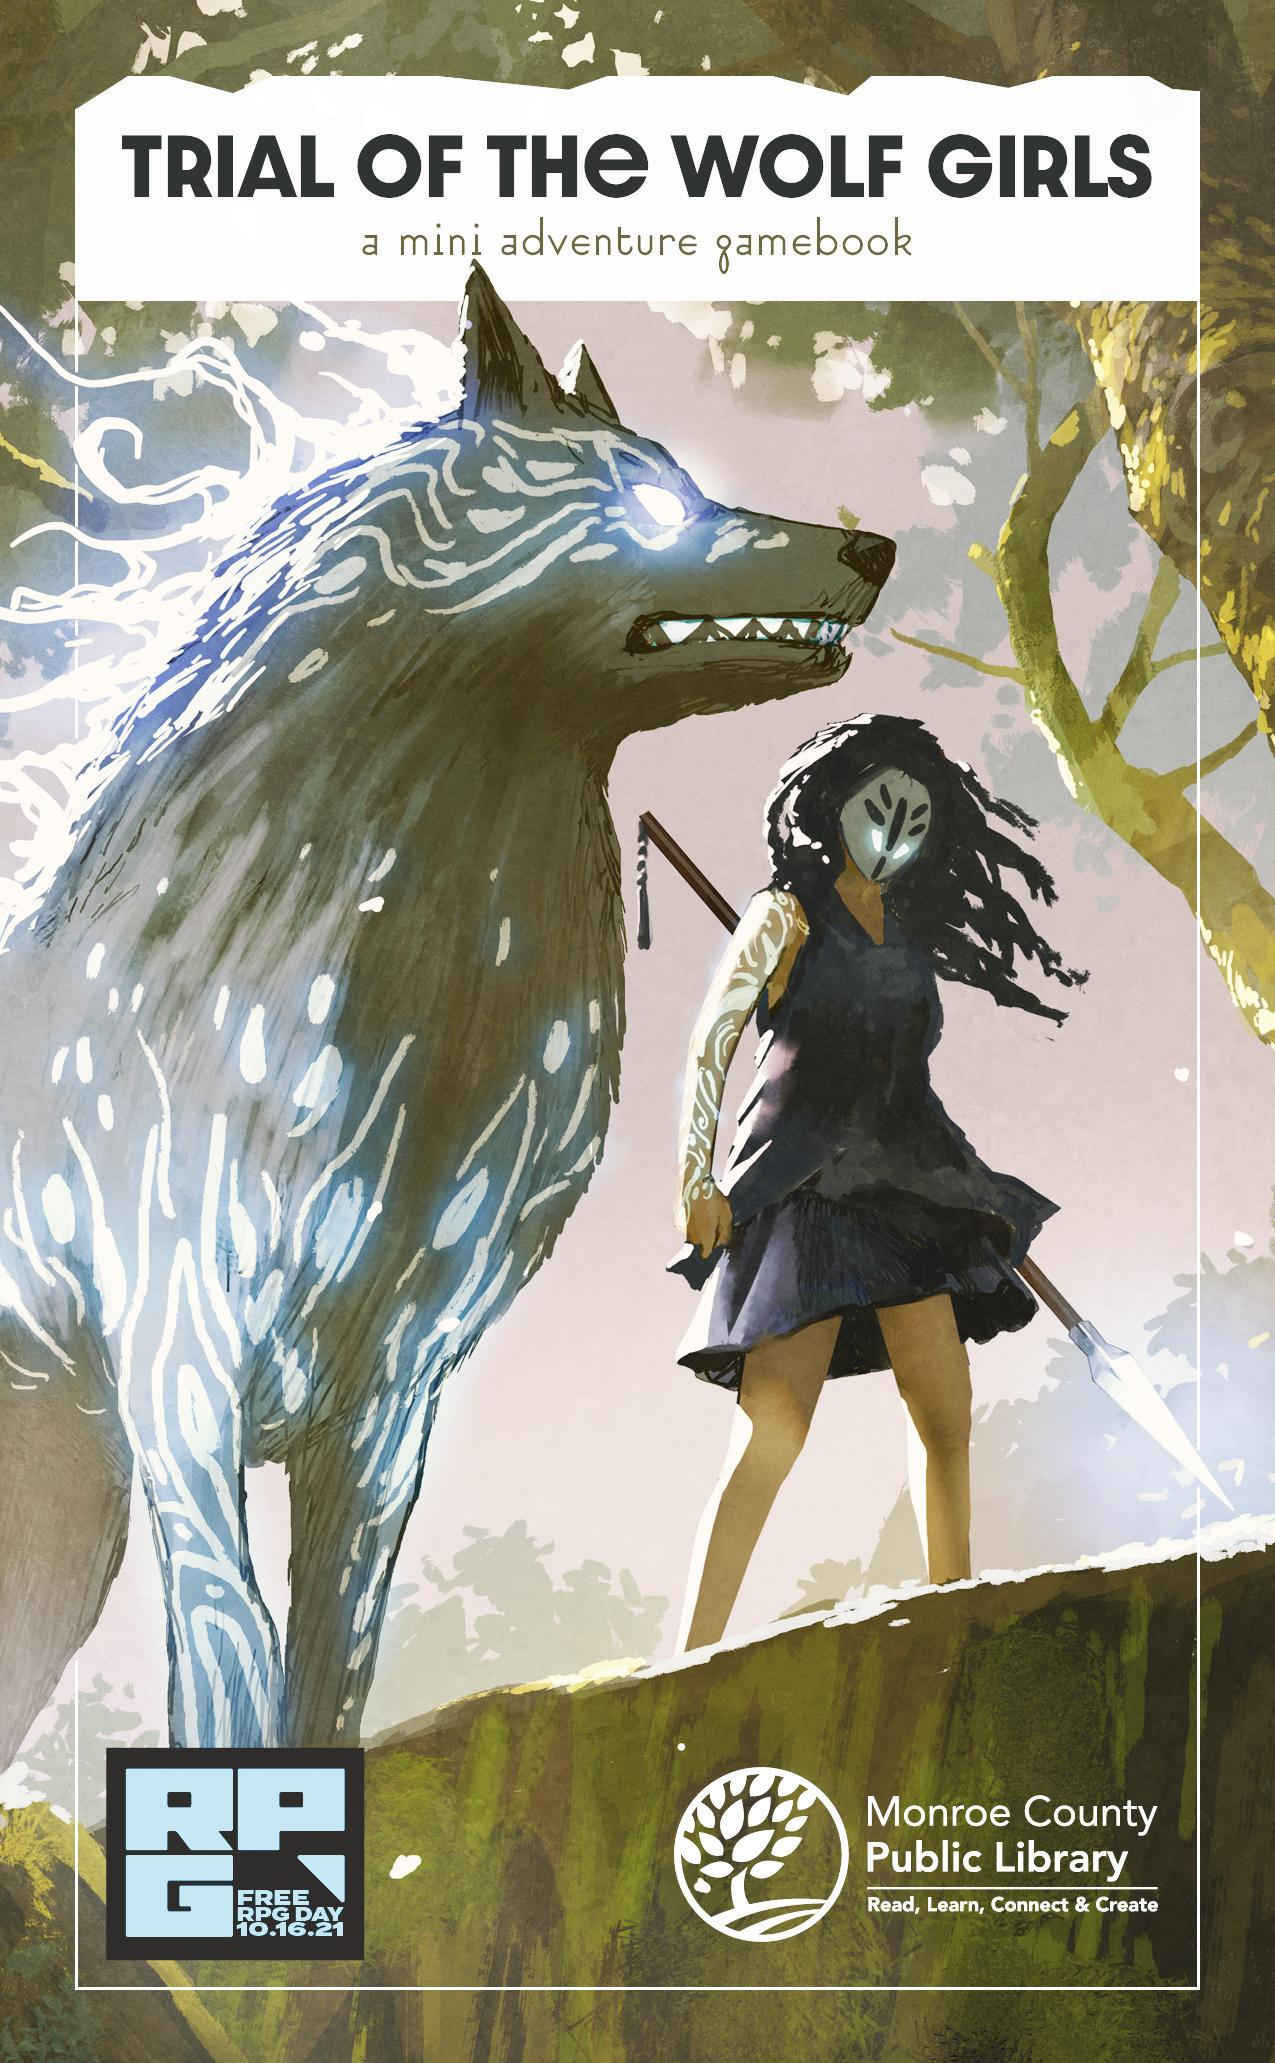 Trial of the Wolf Girls: a mini adventure gamebook